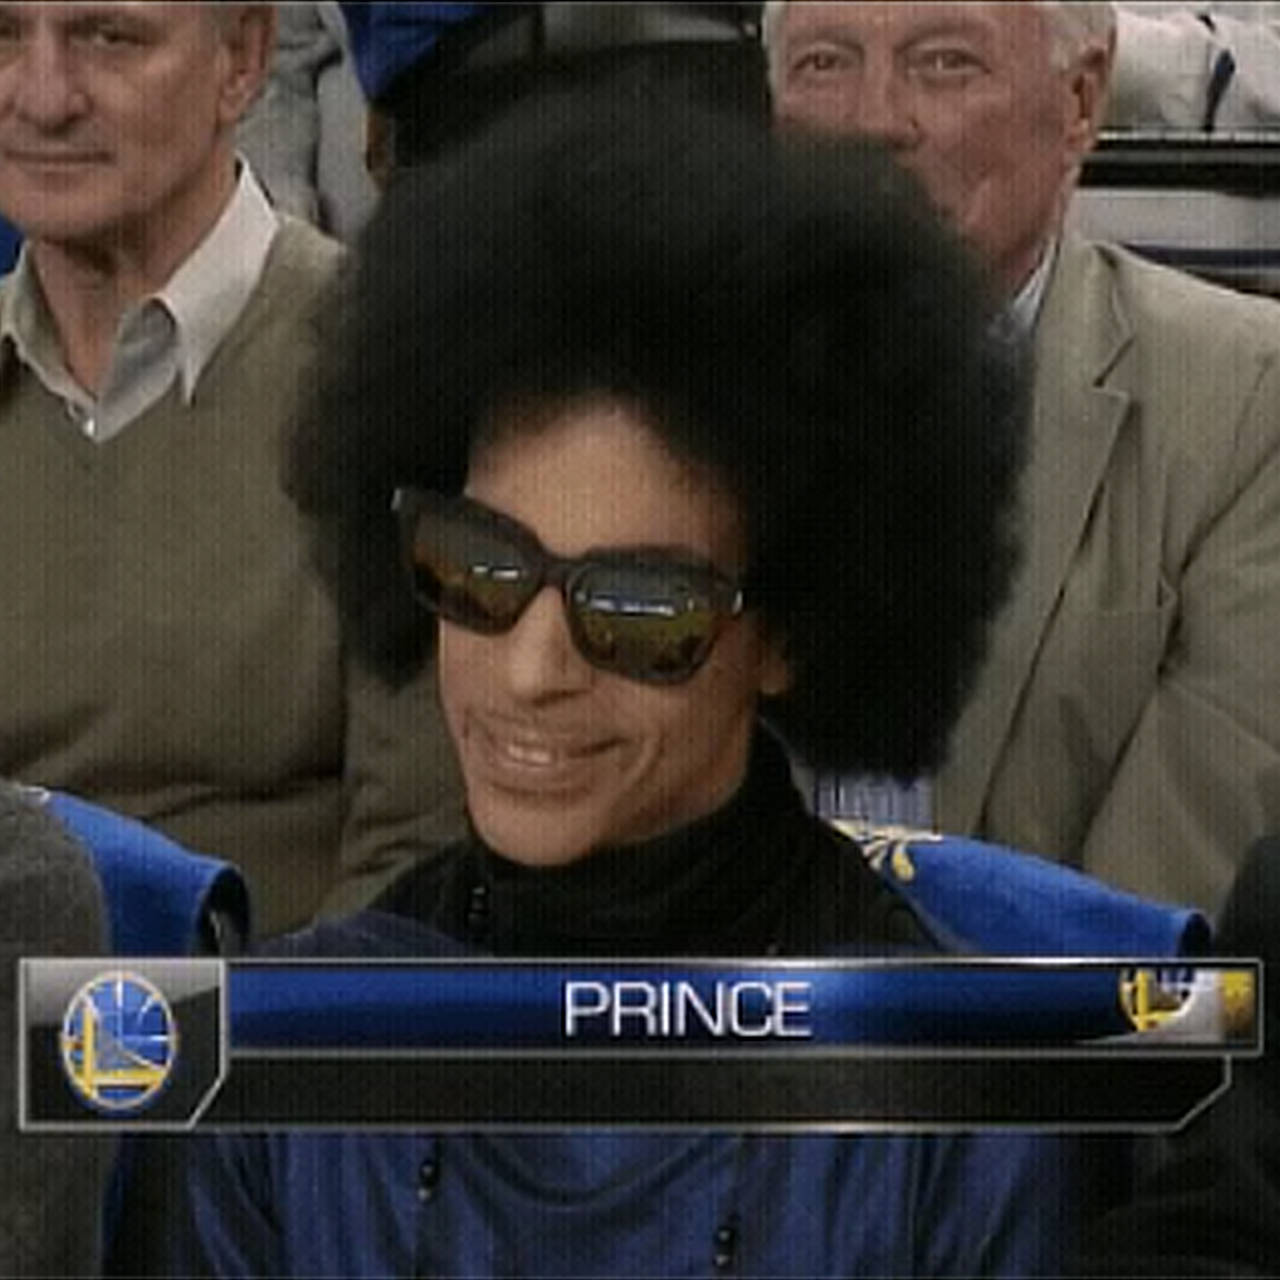 Prince attends Warriors game at Oracle Arena